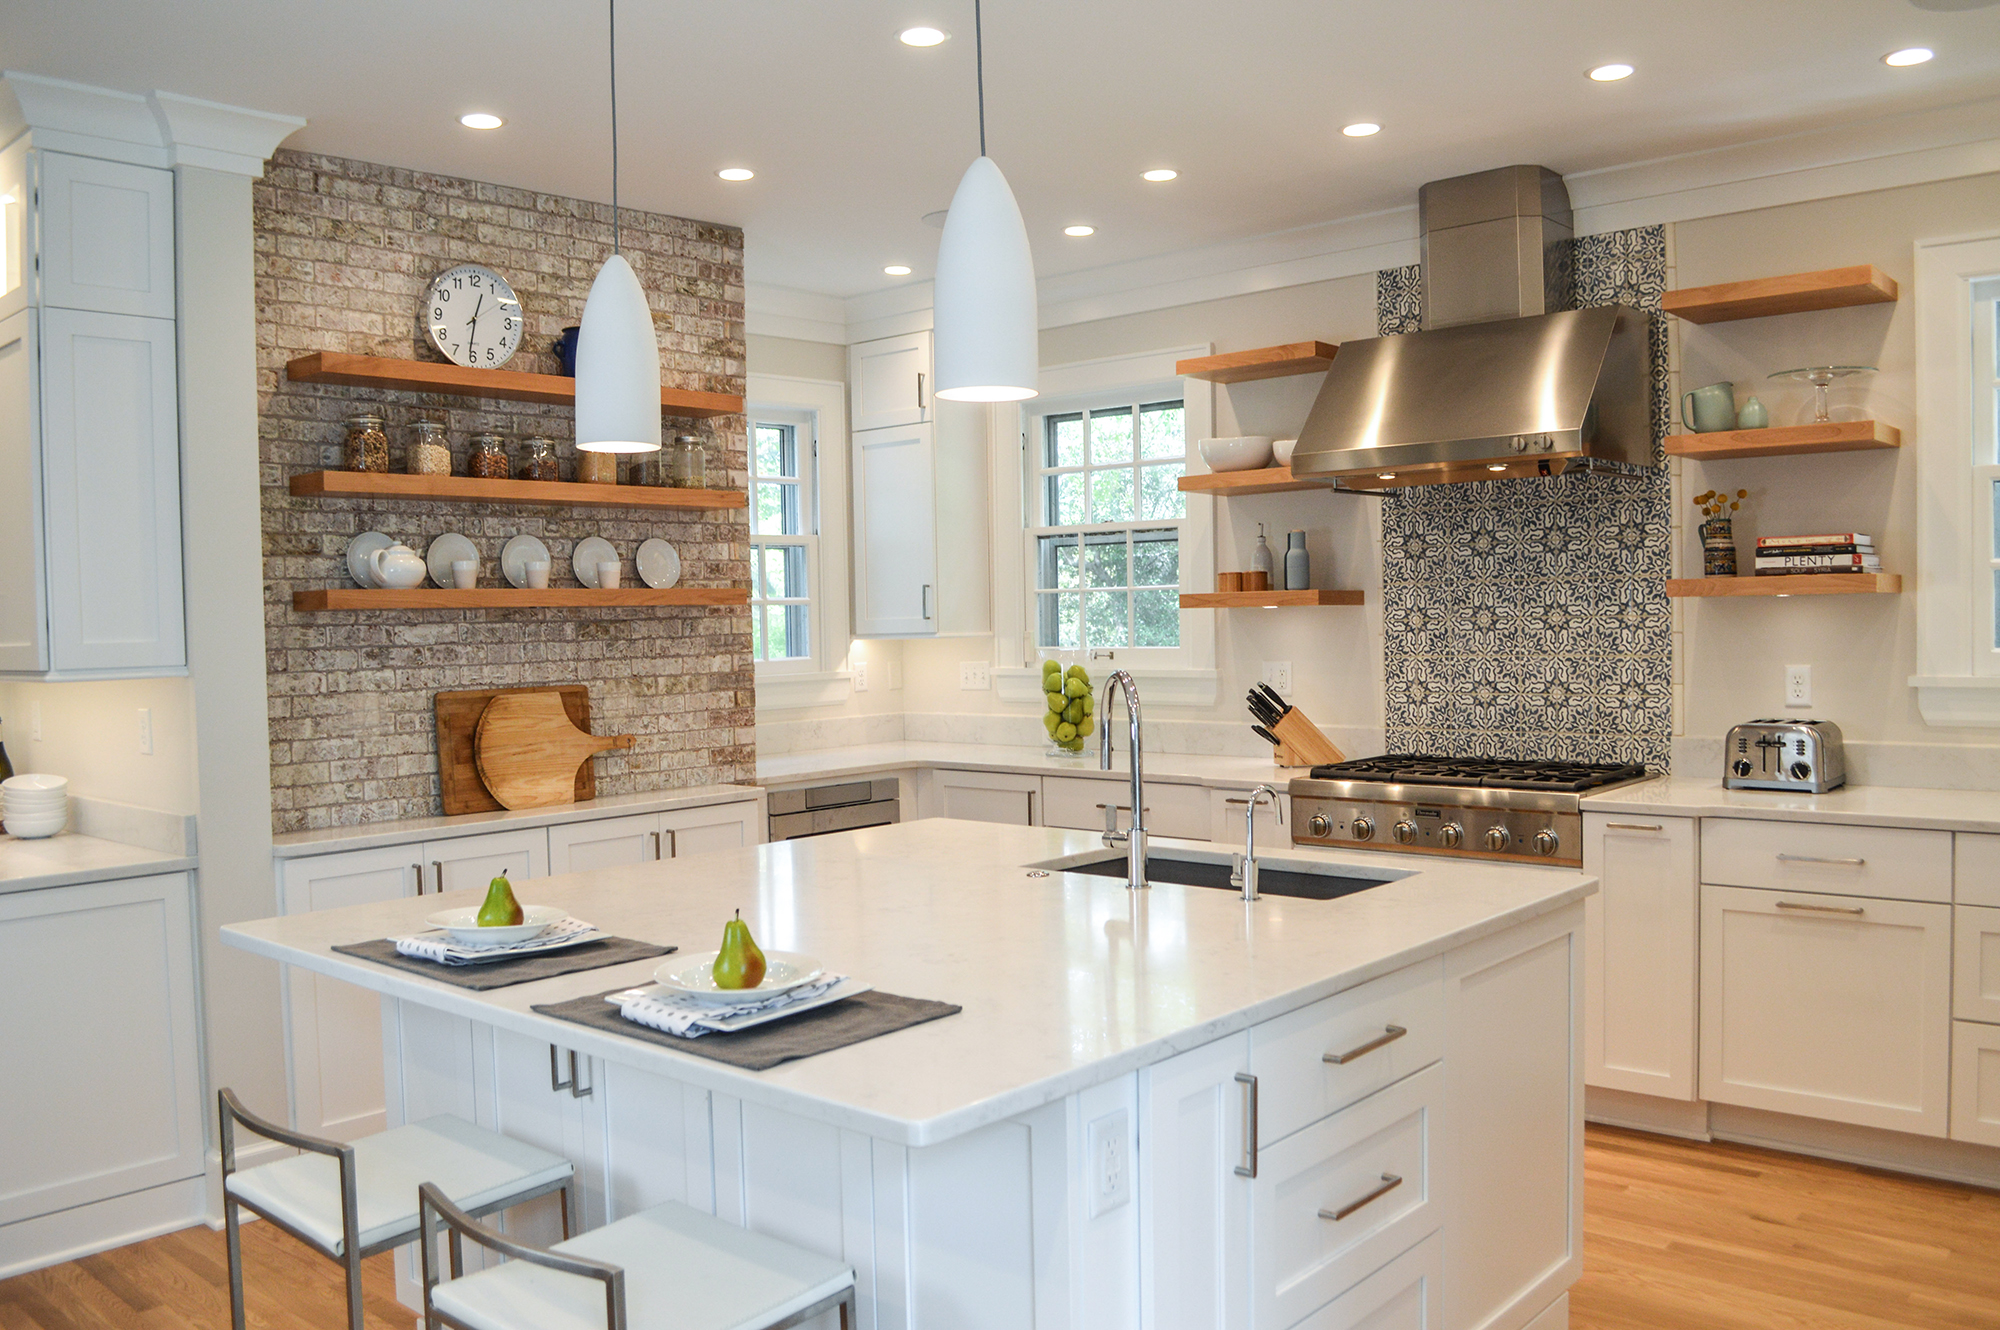 kitchen design ideas houzz studio 76 kitchens amp baths awarded best of houzz 2018 323